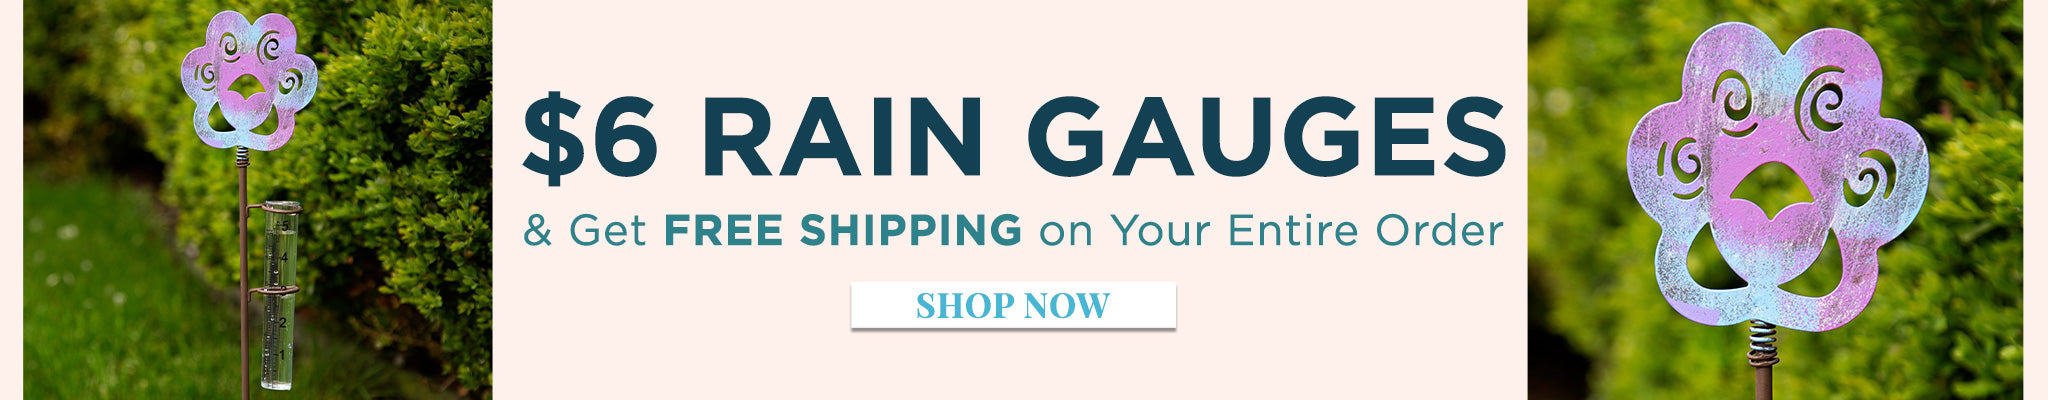 $6 Rain Gauges & FREE Shipping on Your Entire Order   Today Only